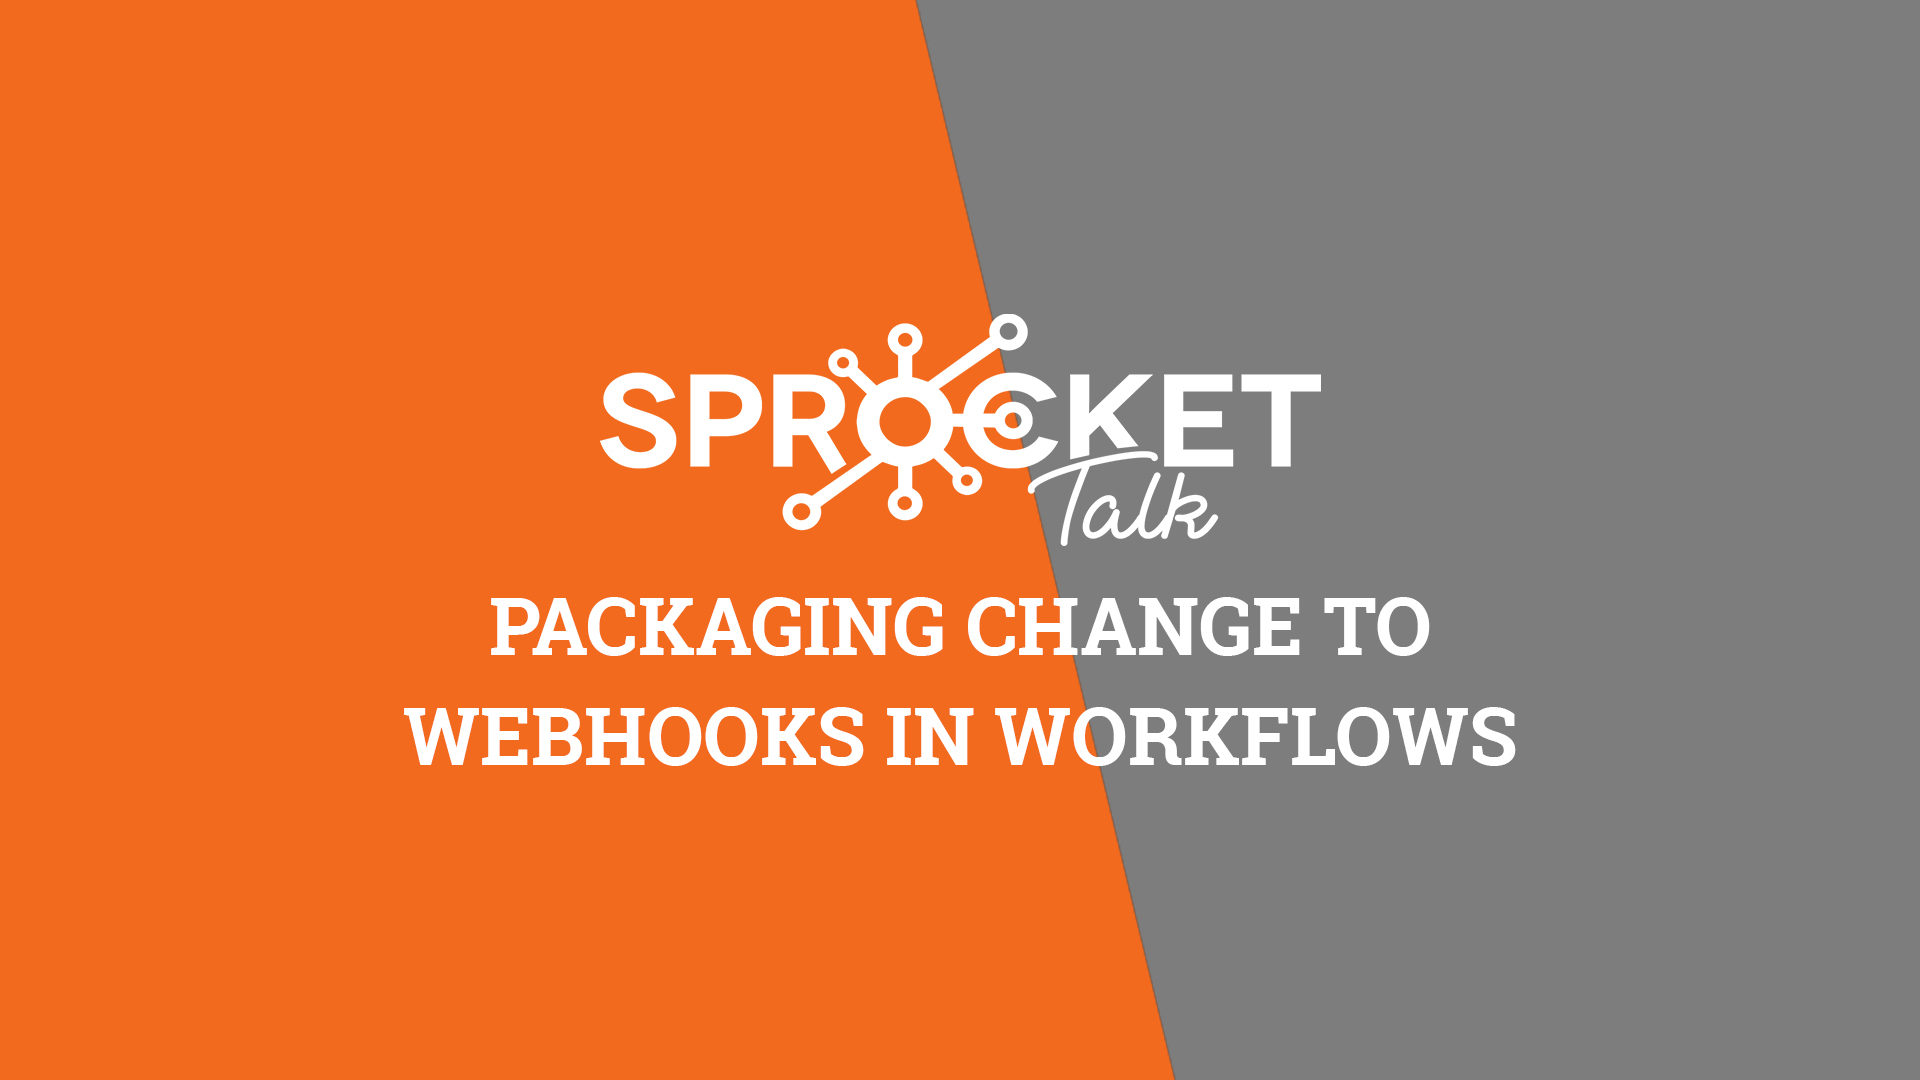 Packaging Change to Webhooks in Workflows